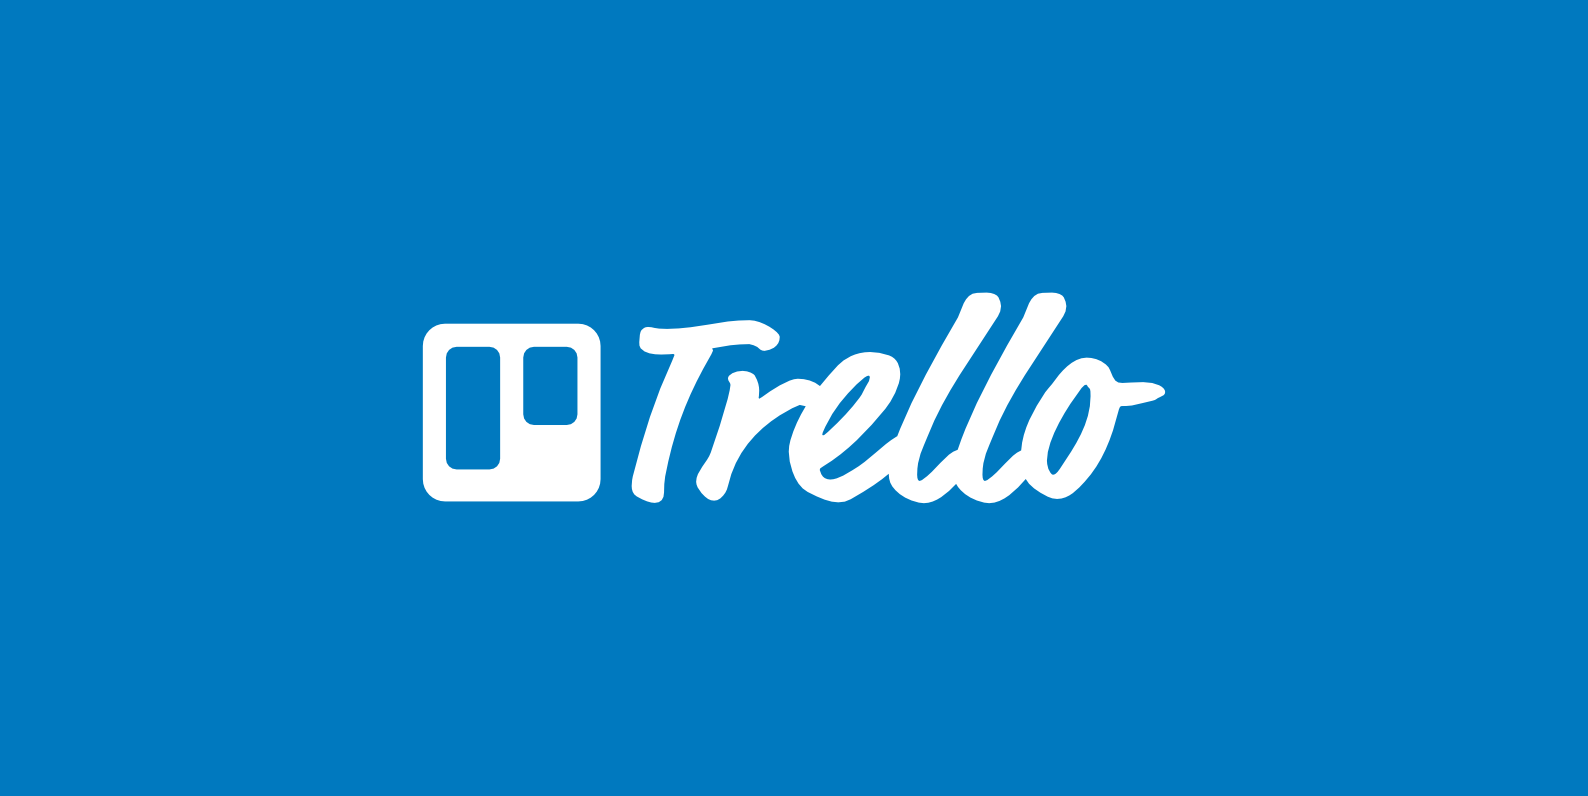 trello credentials and bugs leaked by query